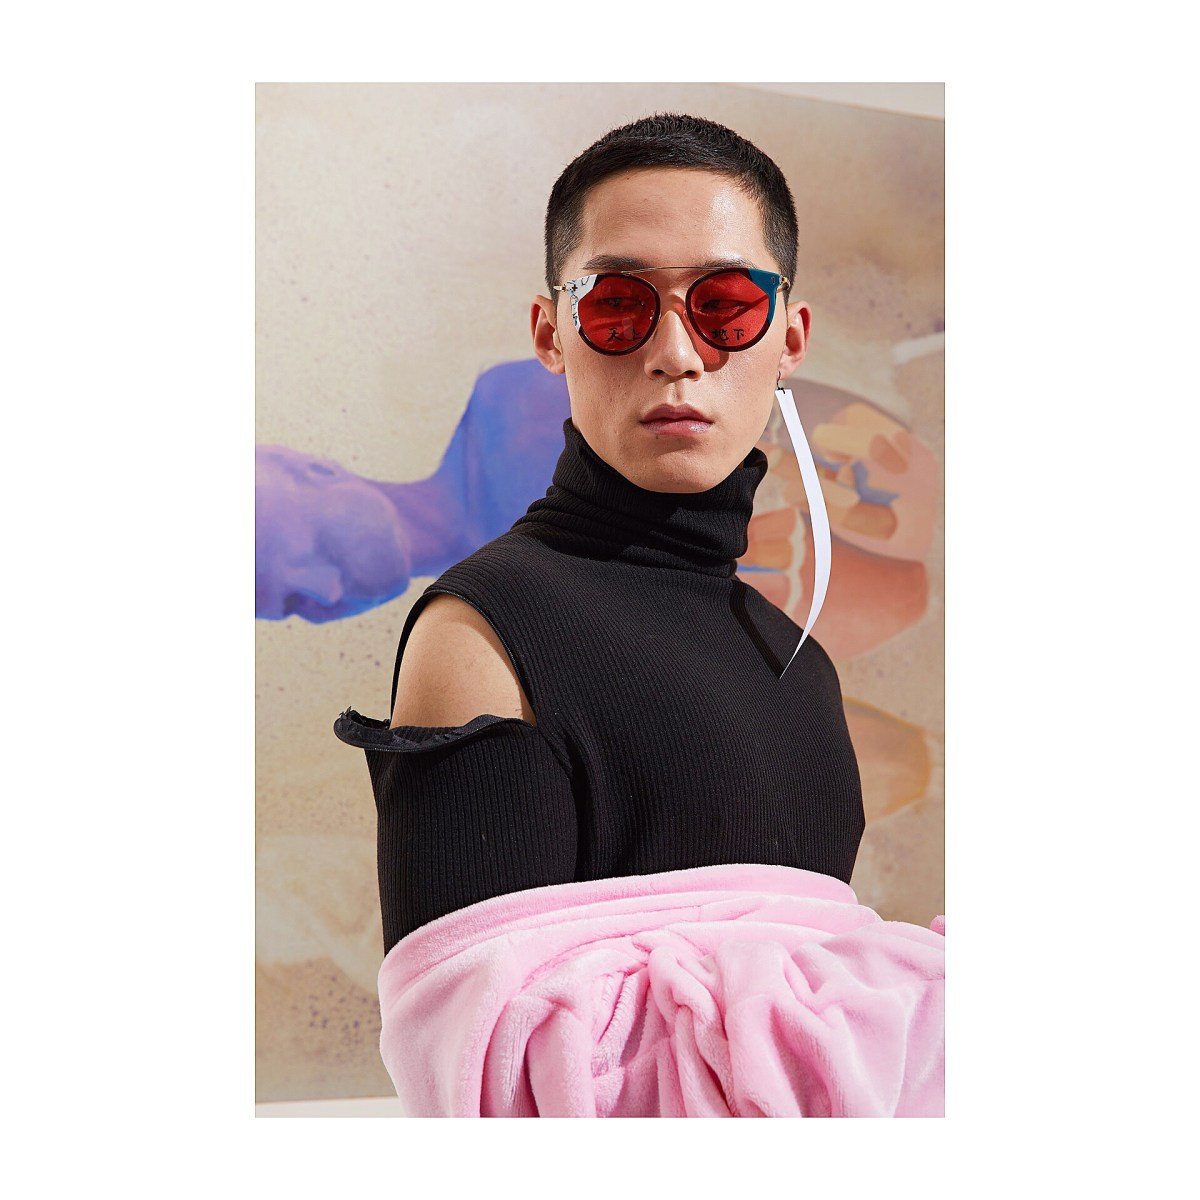 PINK. Is our new obsession. Design by Li Yiyang for LYAN, 2019. All rights reserved